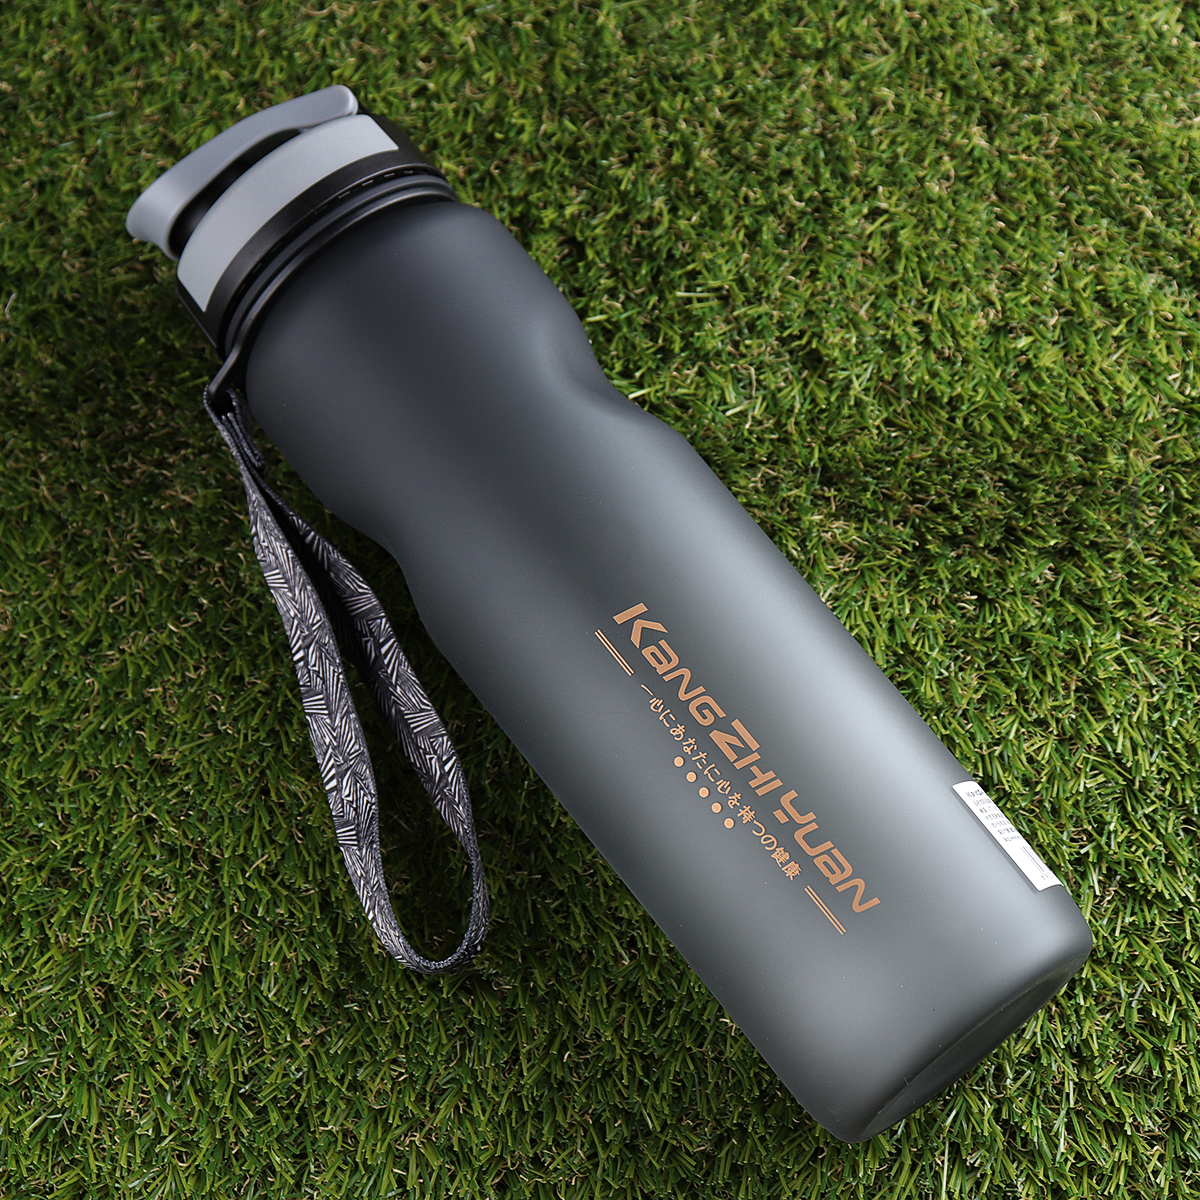 1L-Portable-Plastic-Leakproof-Sports-Water-Bottle-Drinking-Cup-Outdoor-Cycling